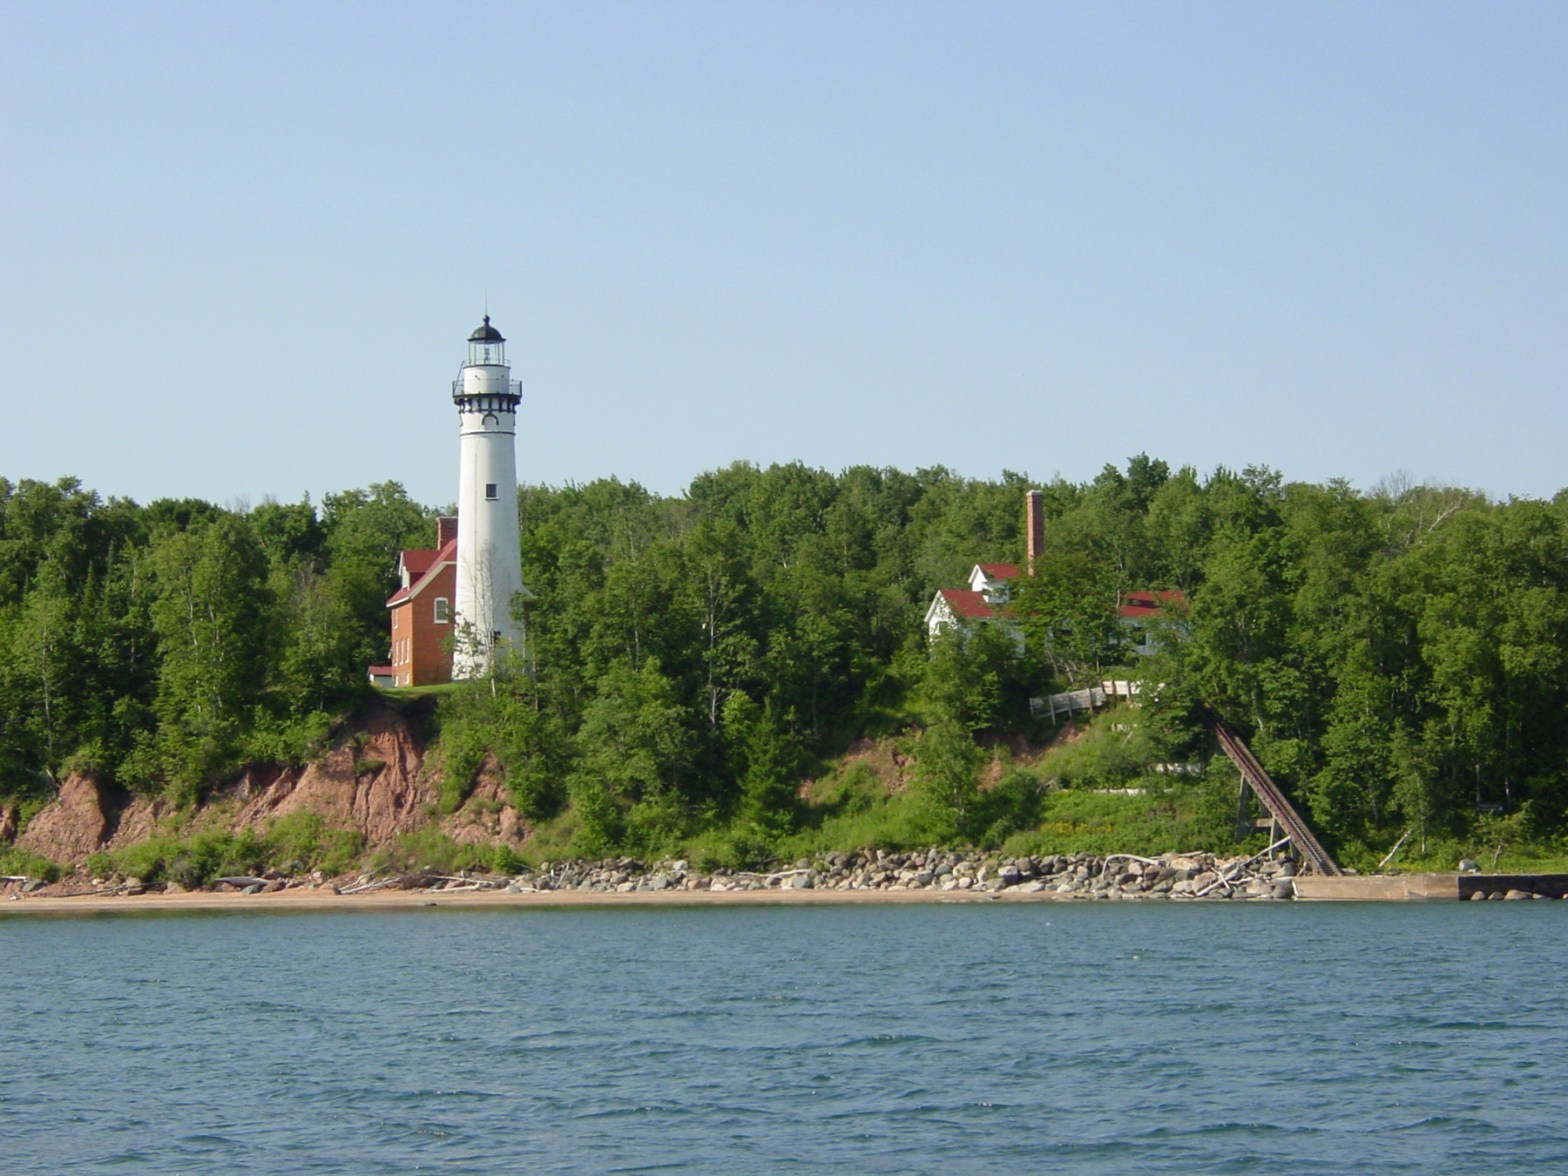 Outer Island Light from the water